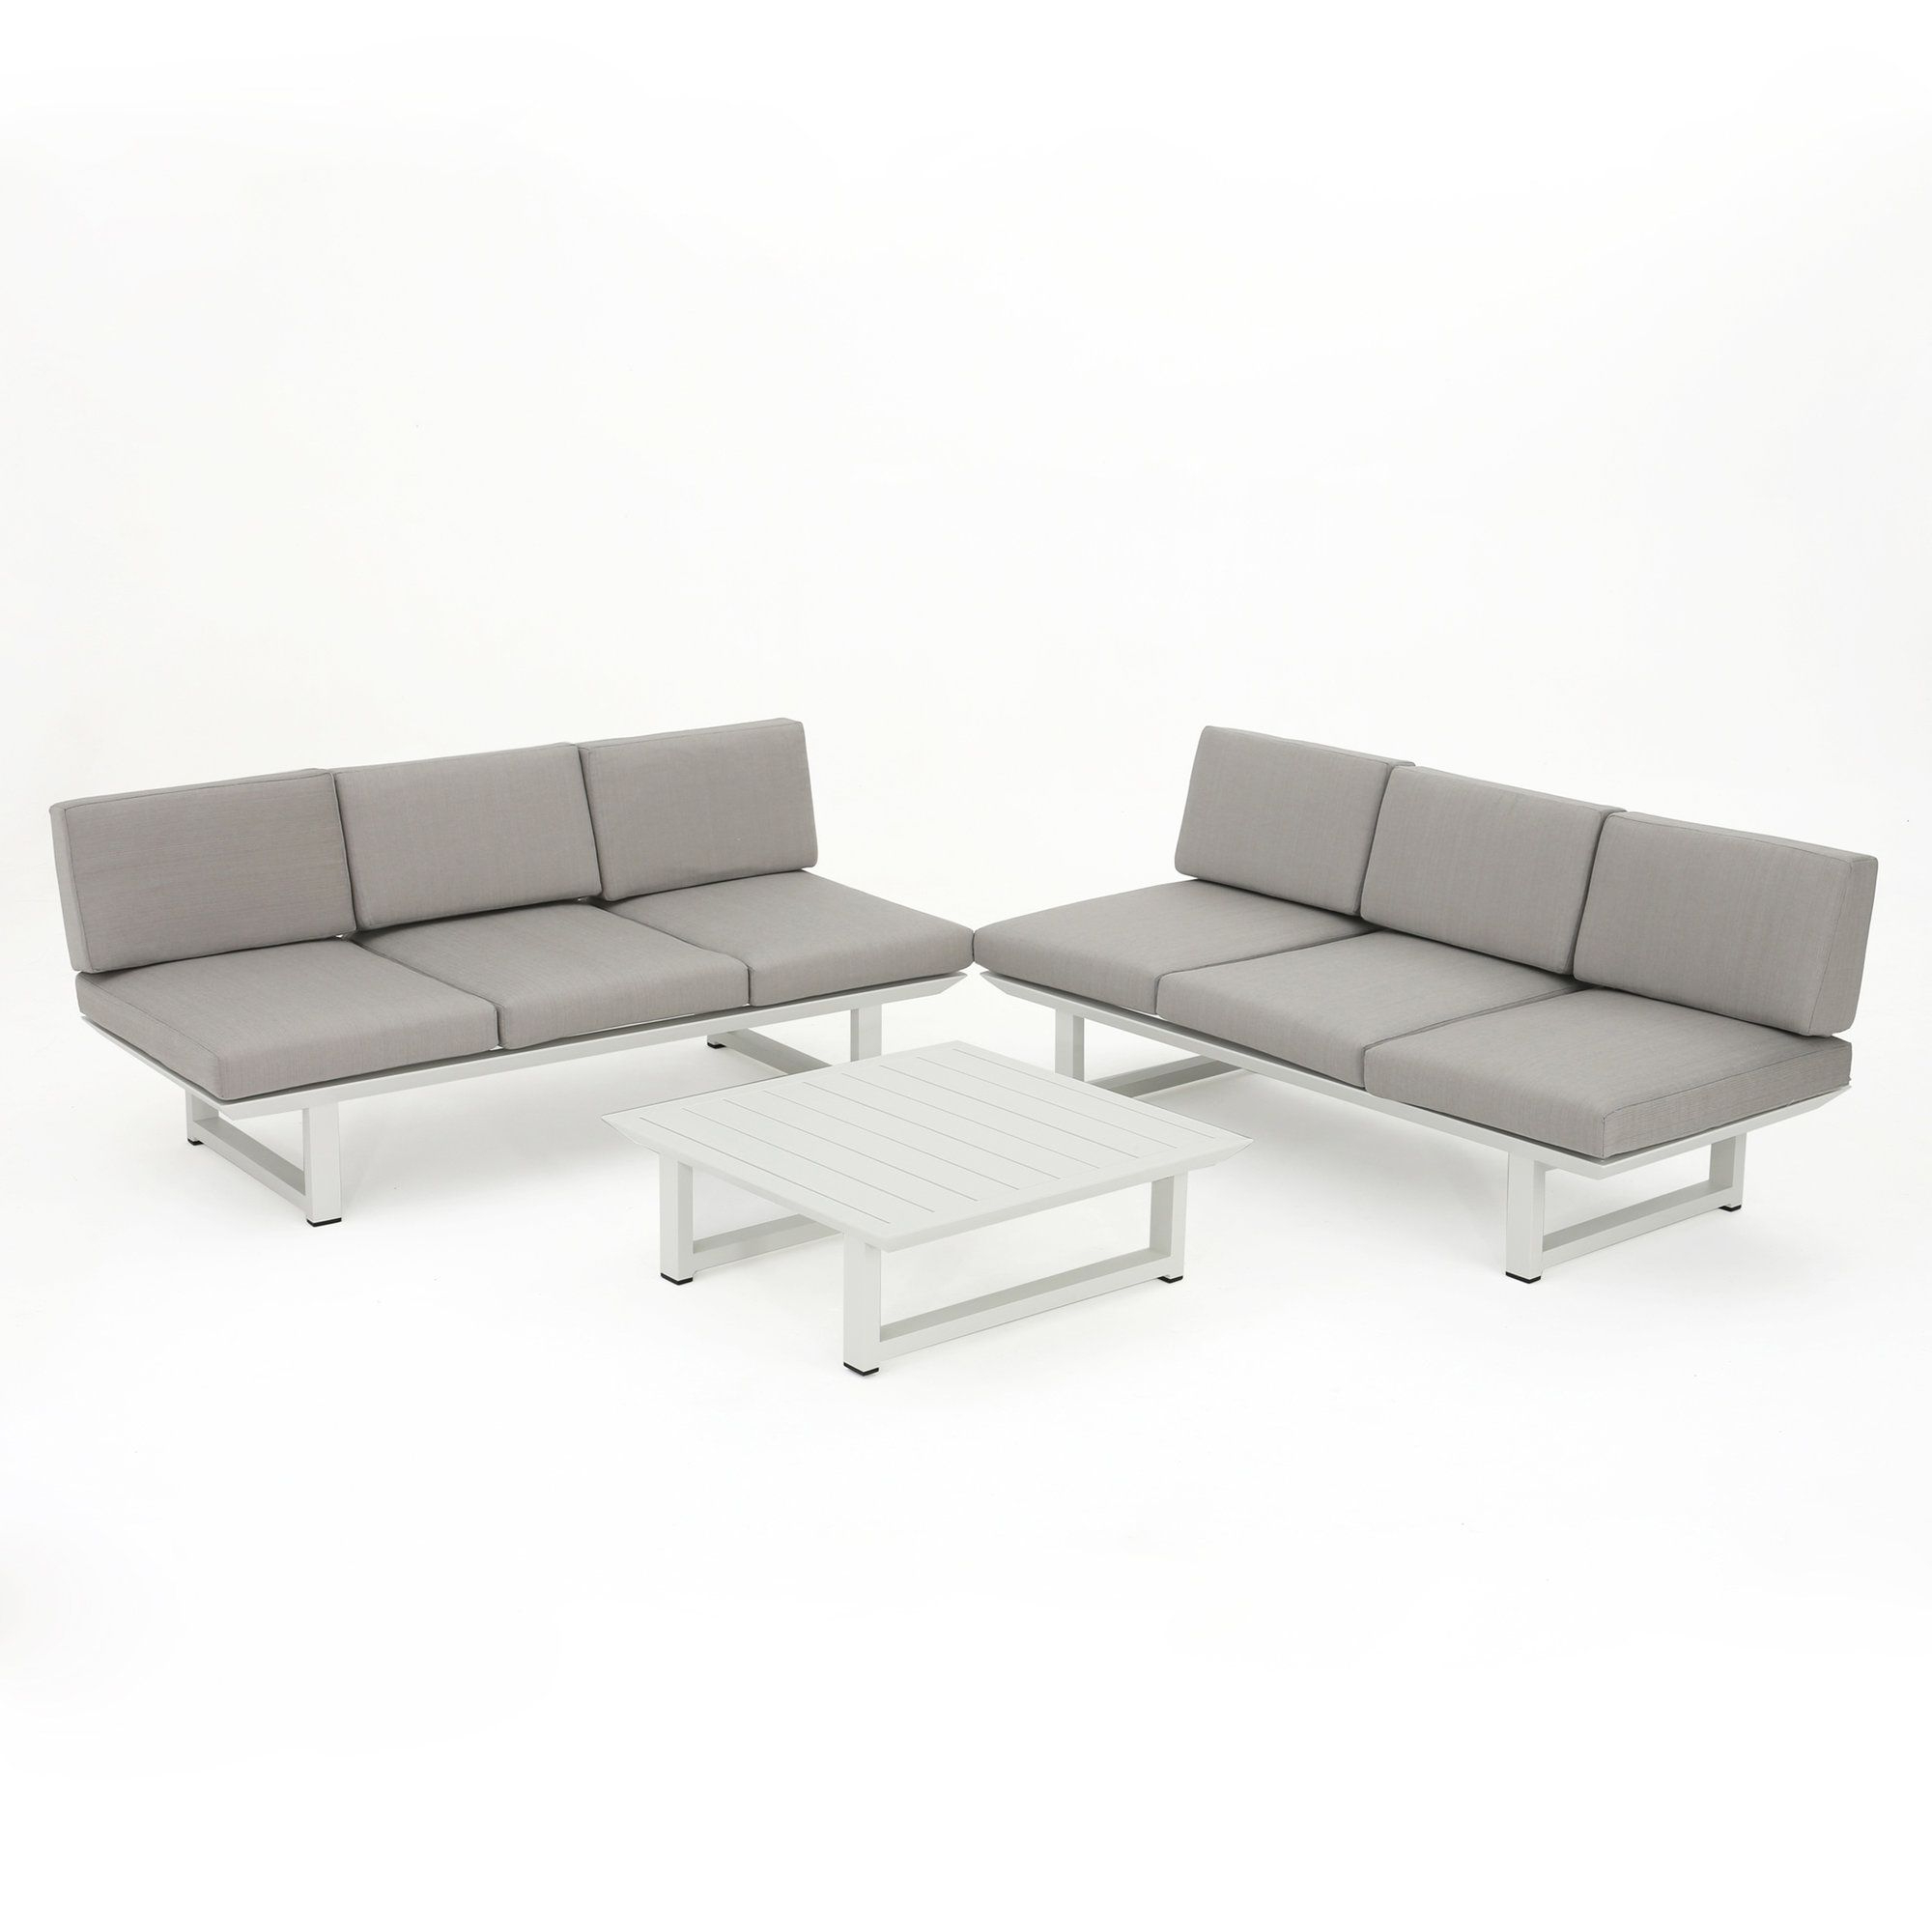 Honeycutt Patio Sofas With Cushions Intended For Most Recently Released Grace Outdoor Aluminum 3 Piece Deep Seating Group With (View 19 of 25)